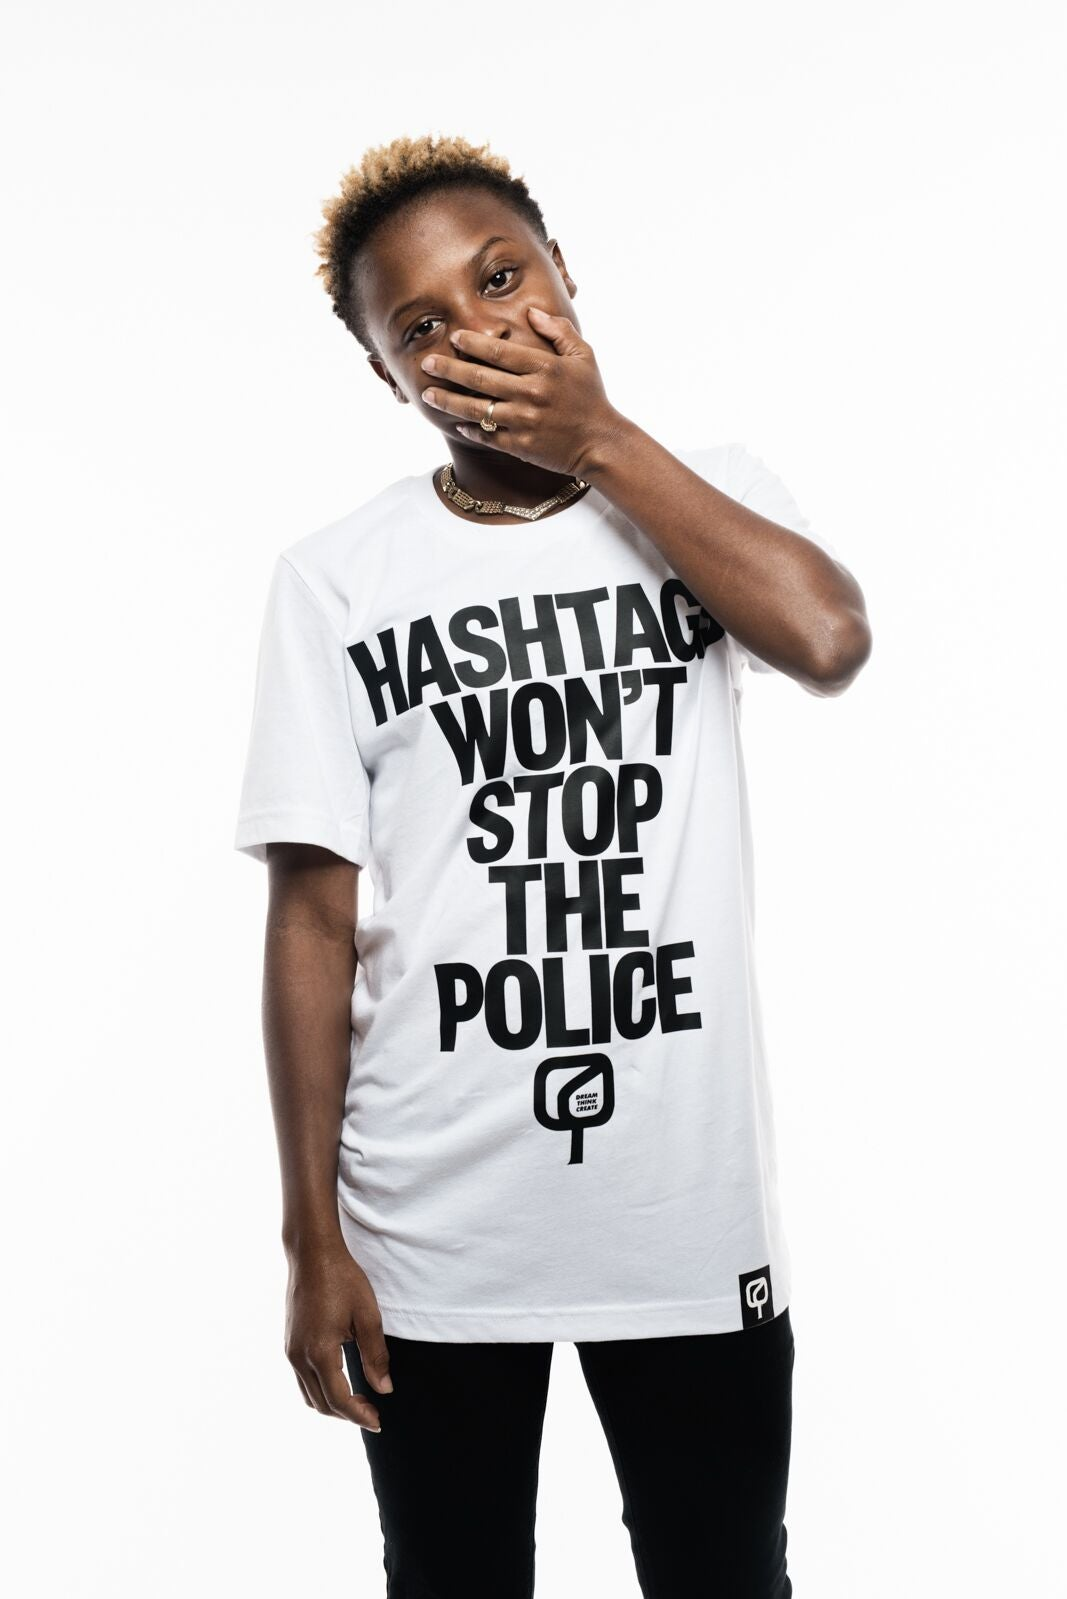 Image of HASHTAGS WON'T STOP THE POLICE